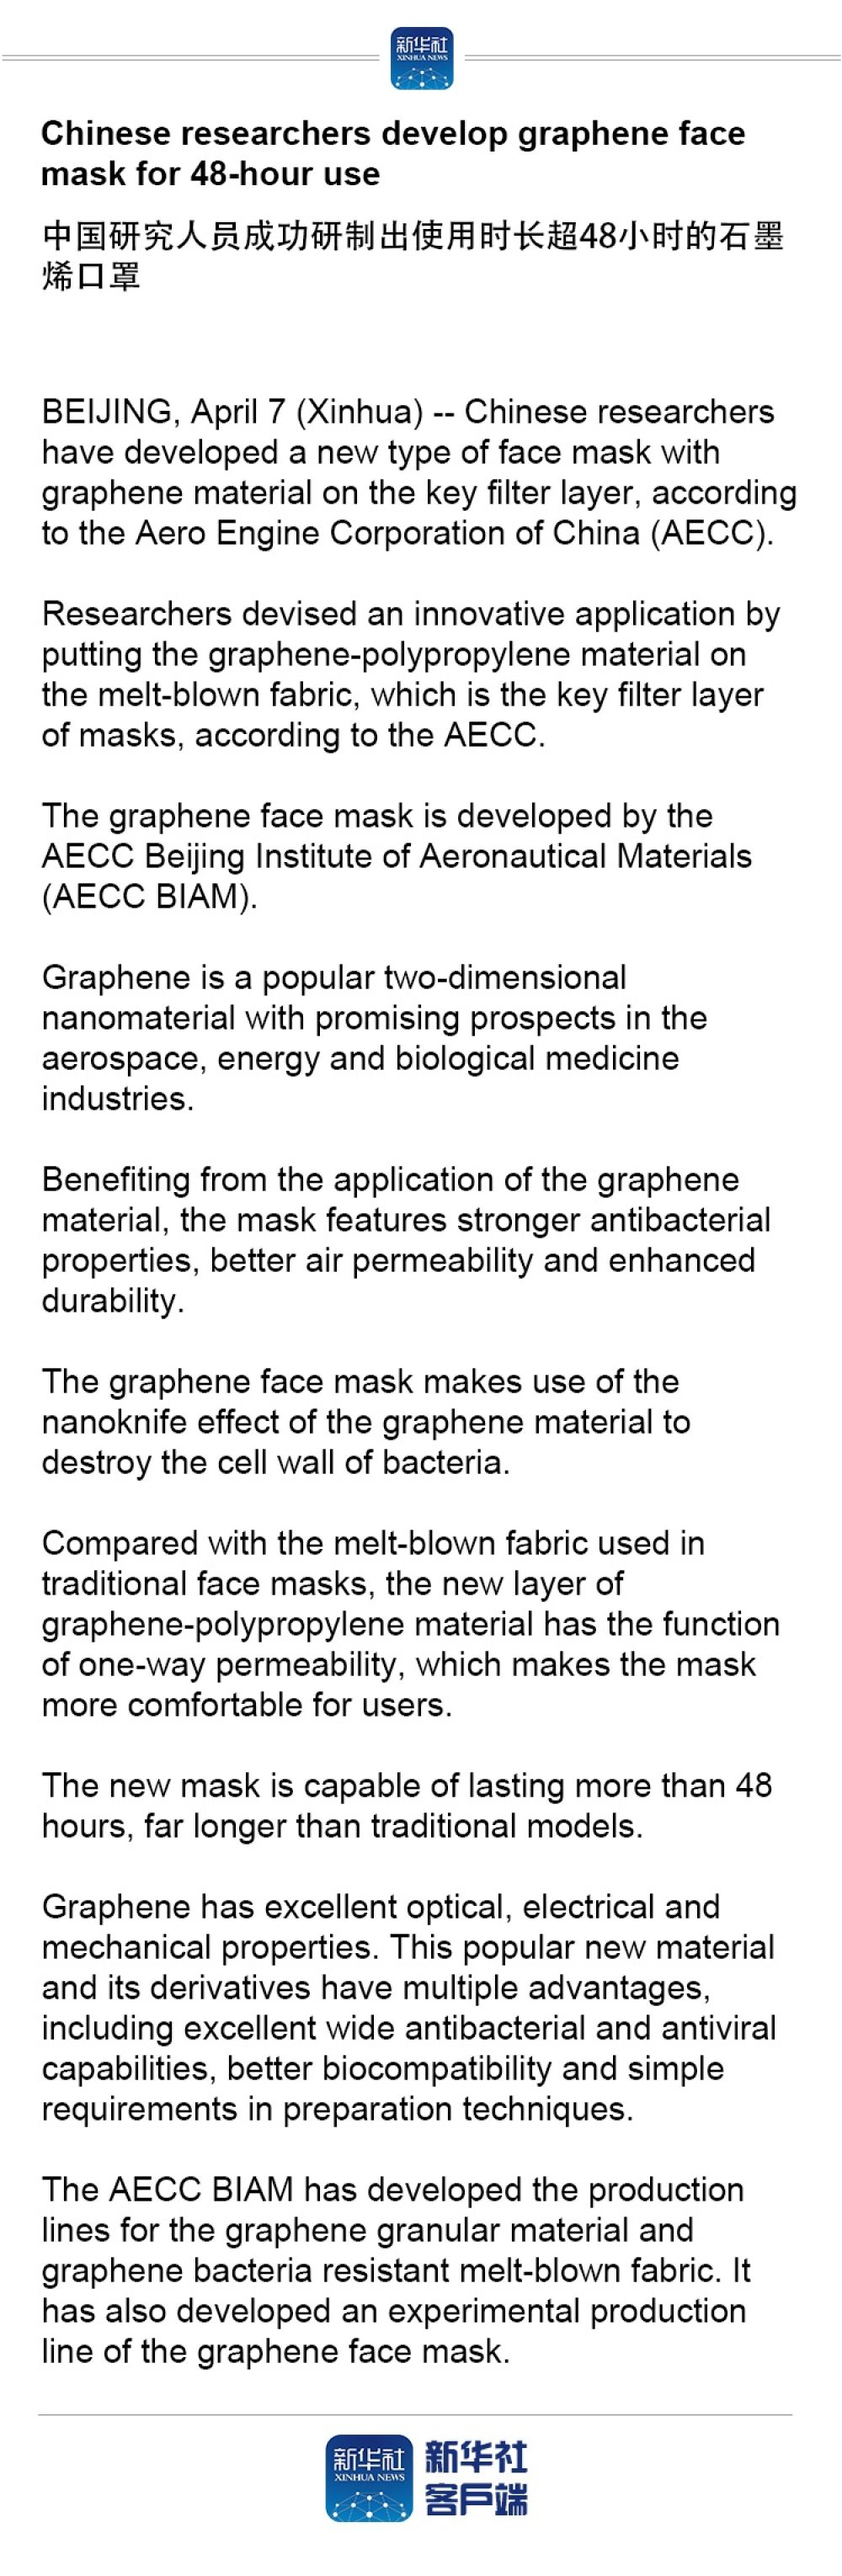 Chinese researchers develop graphene face mask for 48-hour use